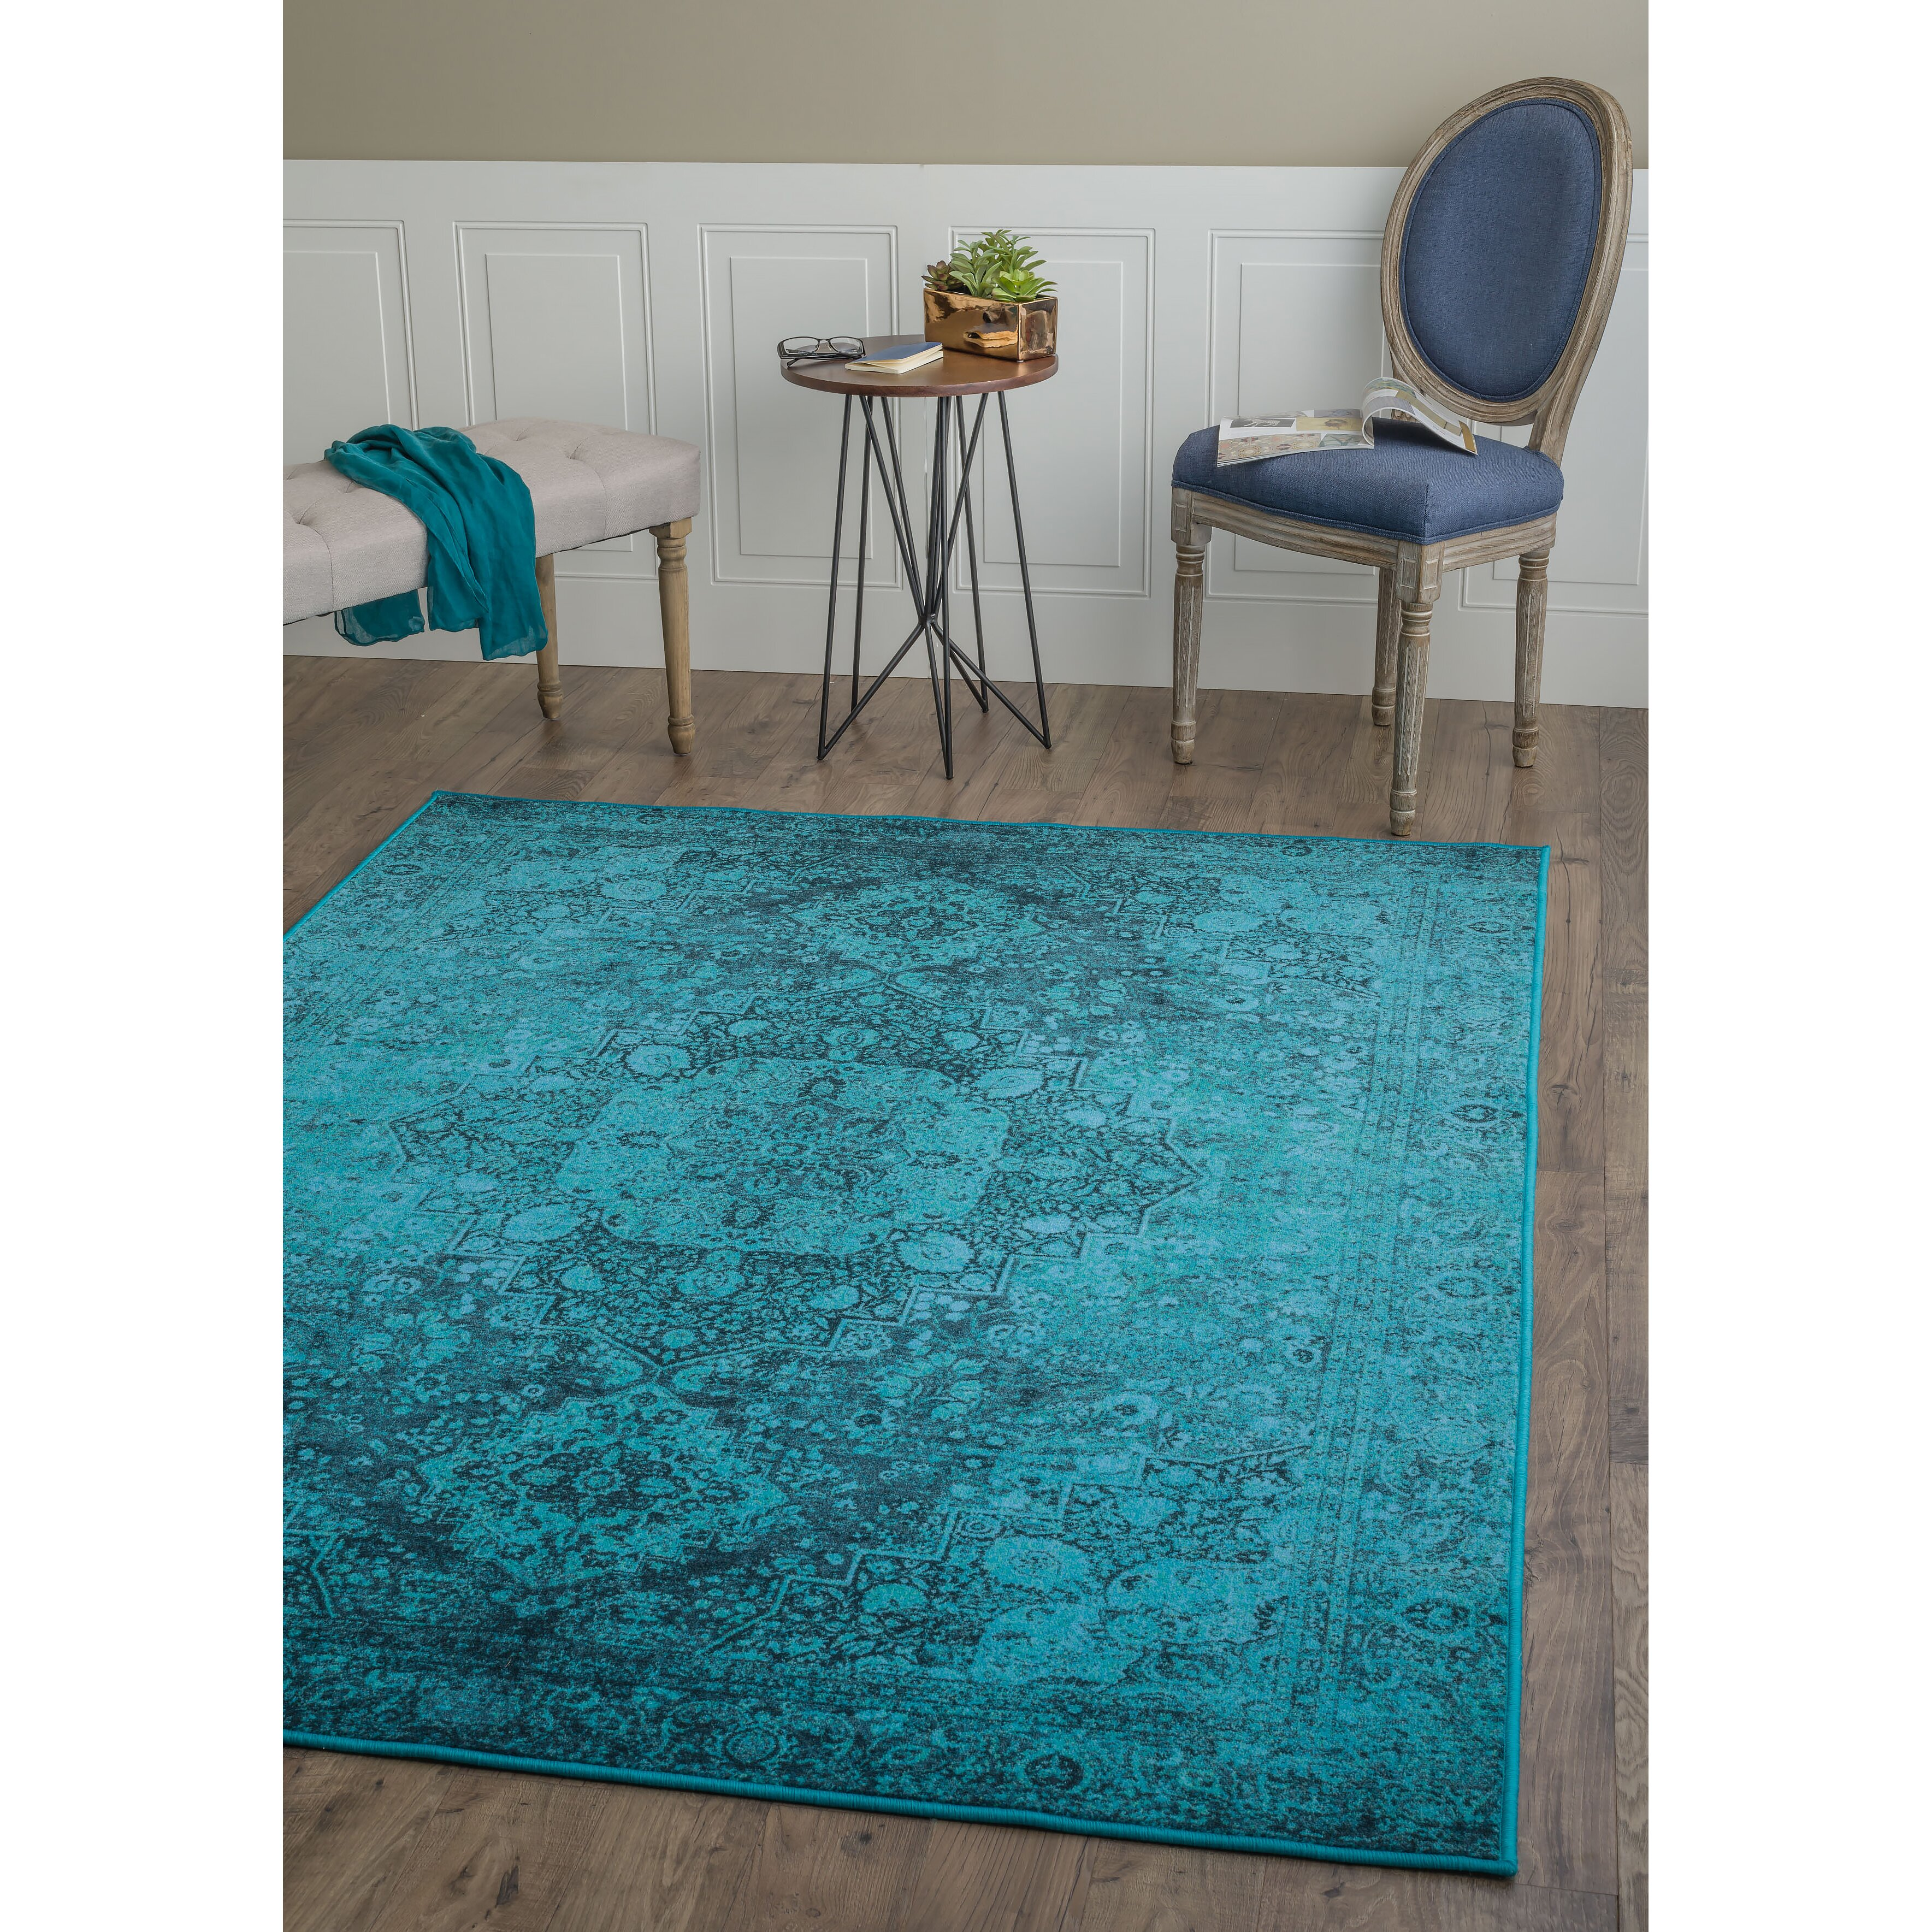 Teal Area Rug: Expressions Teal Area Rug